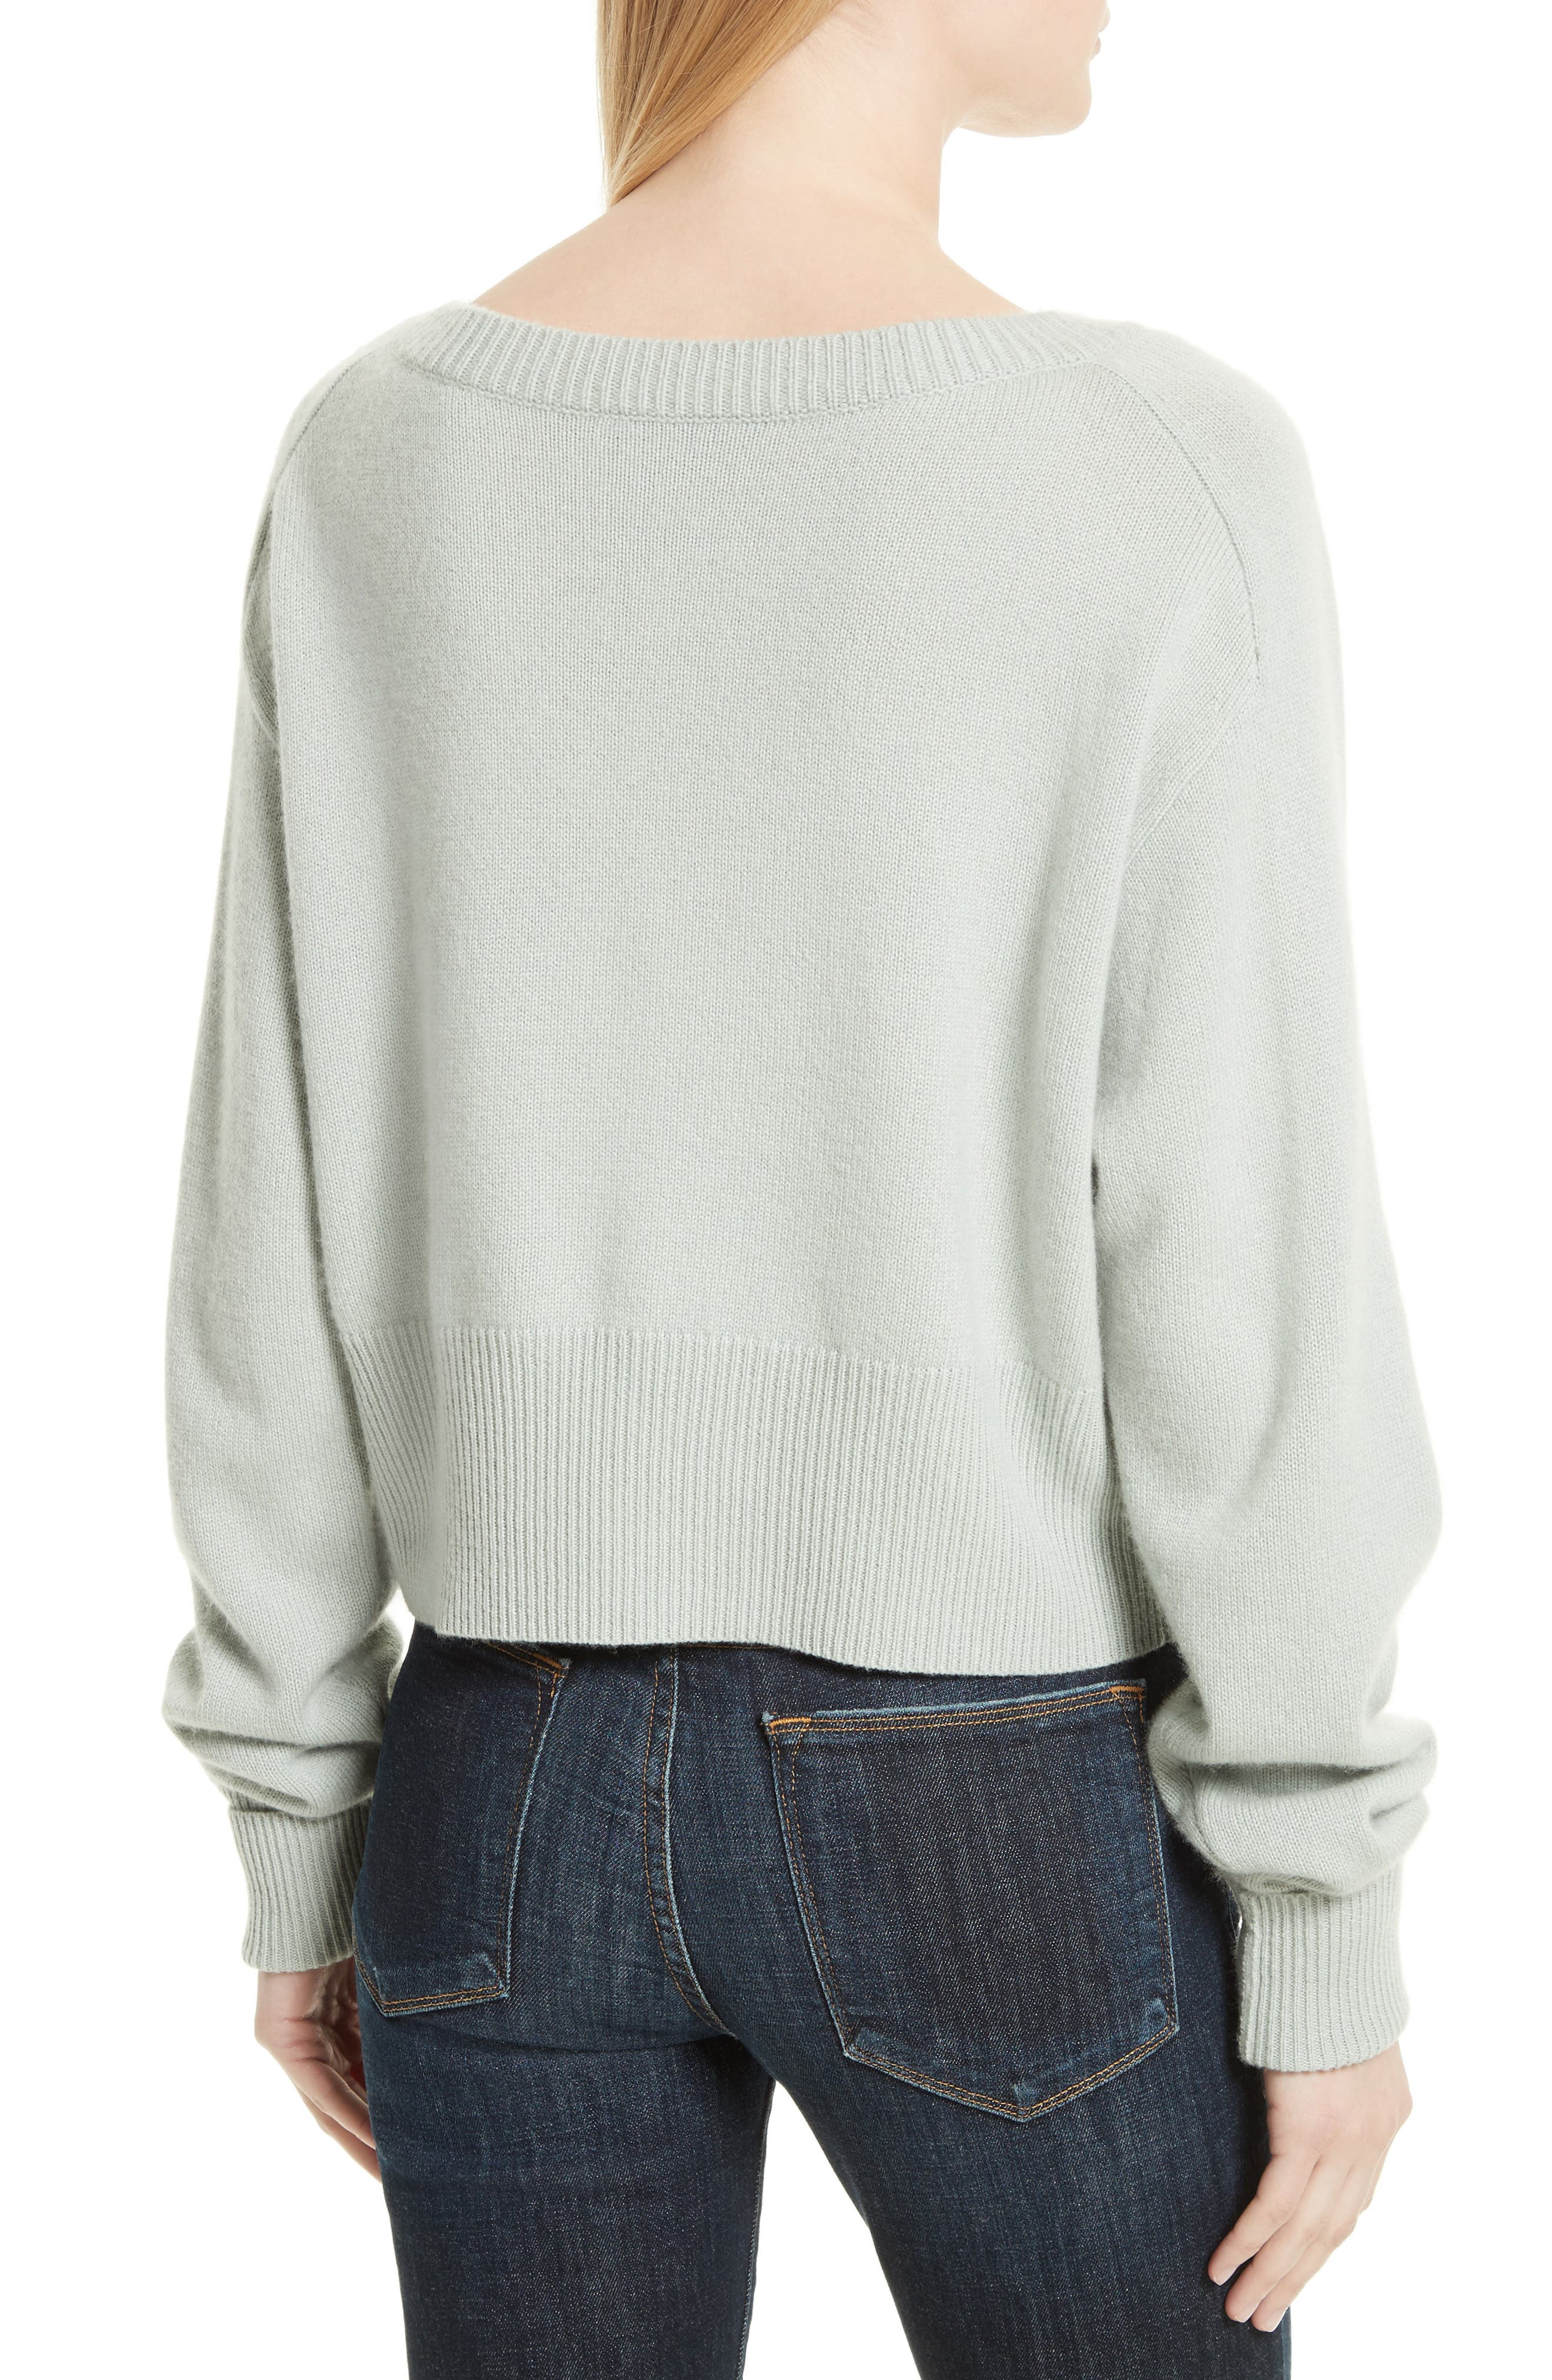 THEORY,                             Boat Neck Cashmere Sweater,                             Alternate thumbnail 2, color,                             374